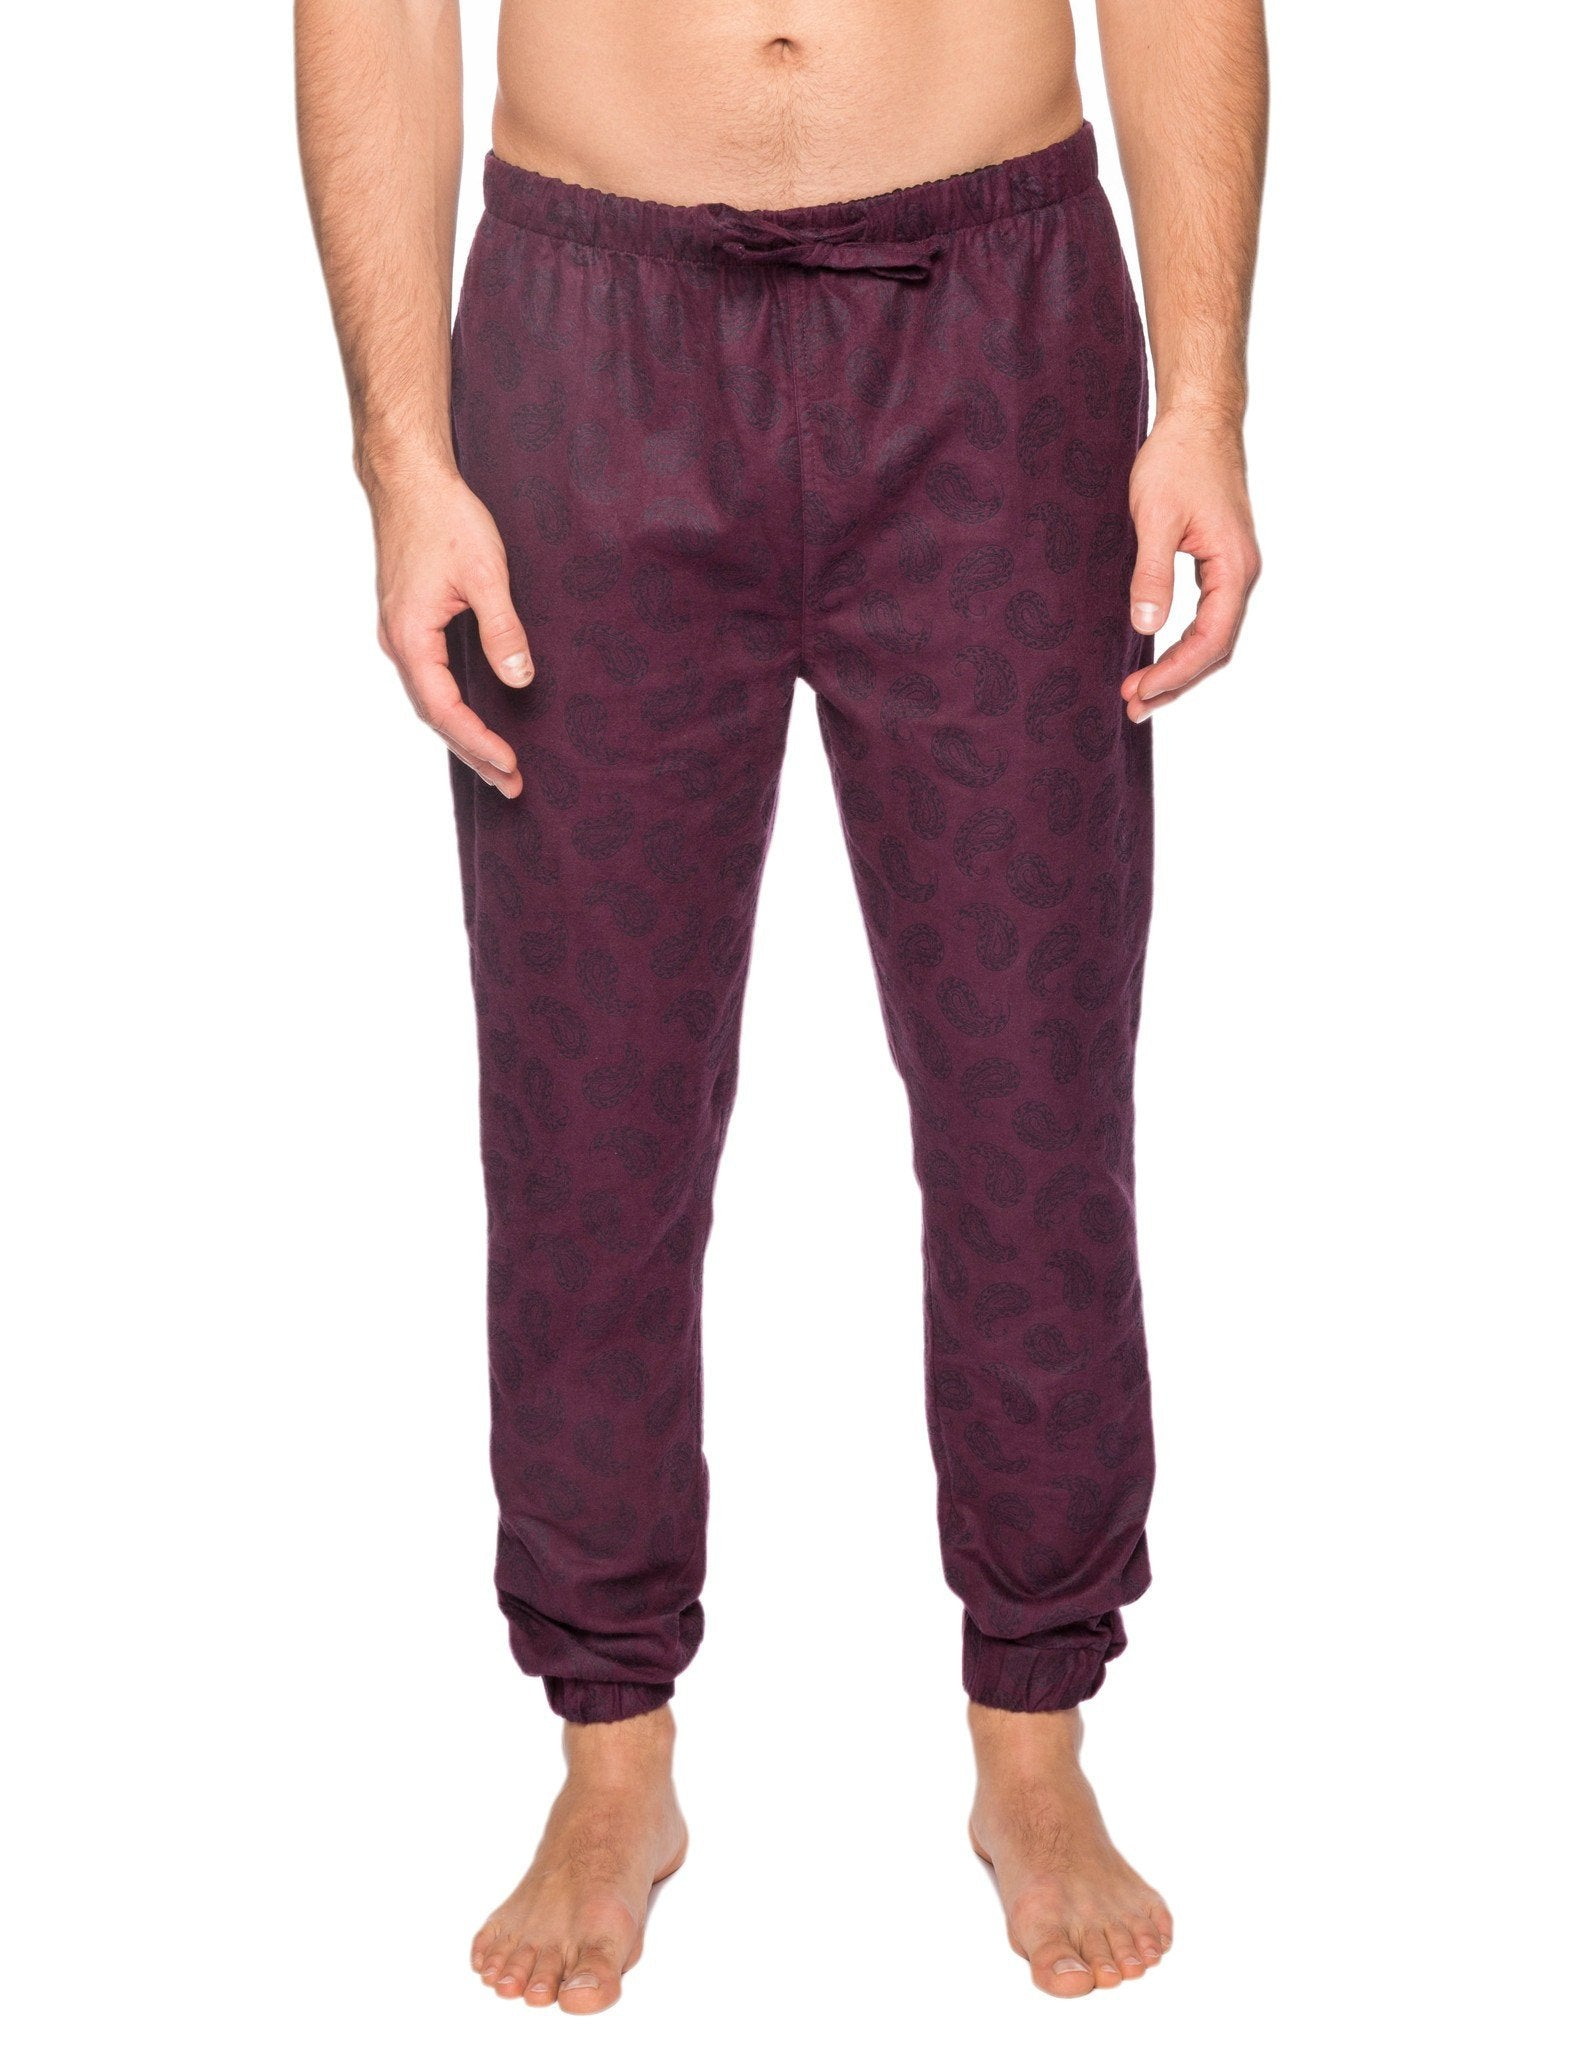 Men's 100% Cotton Flannel Jogger Lounge Pant - Paisley Fig/Black